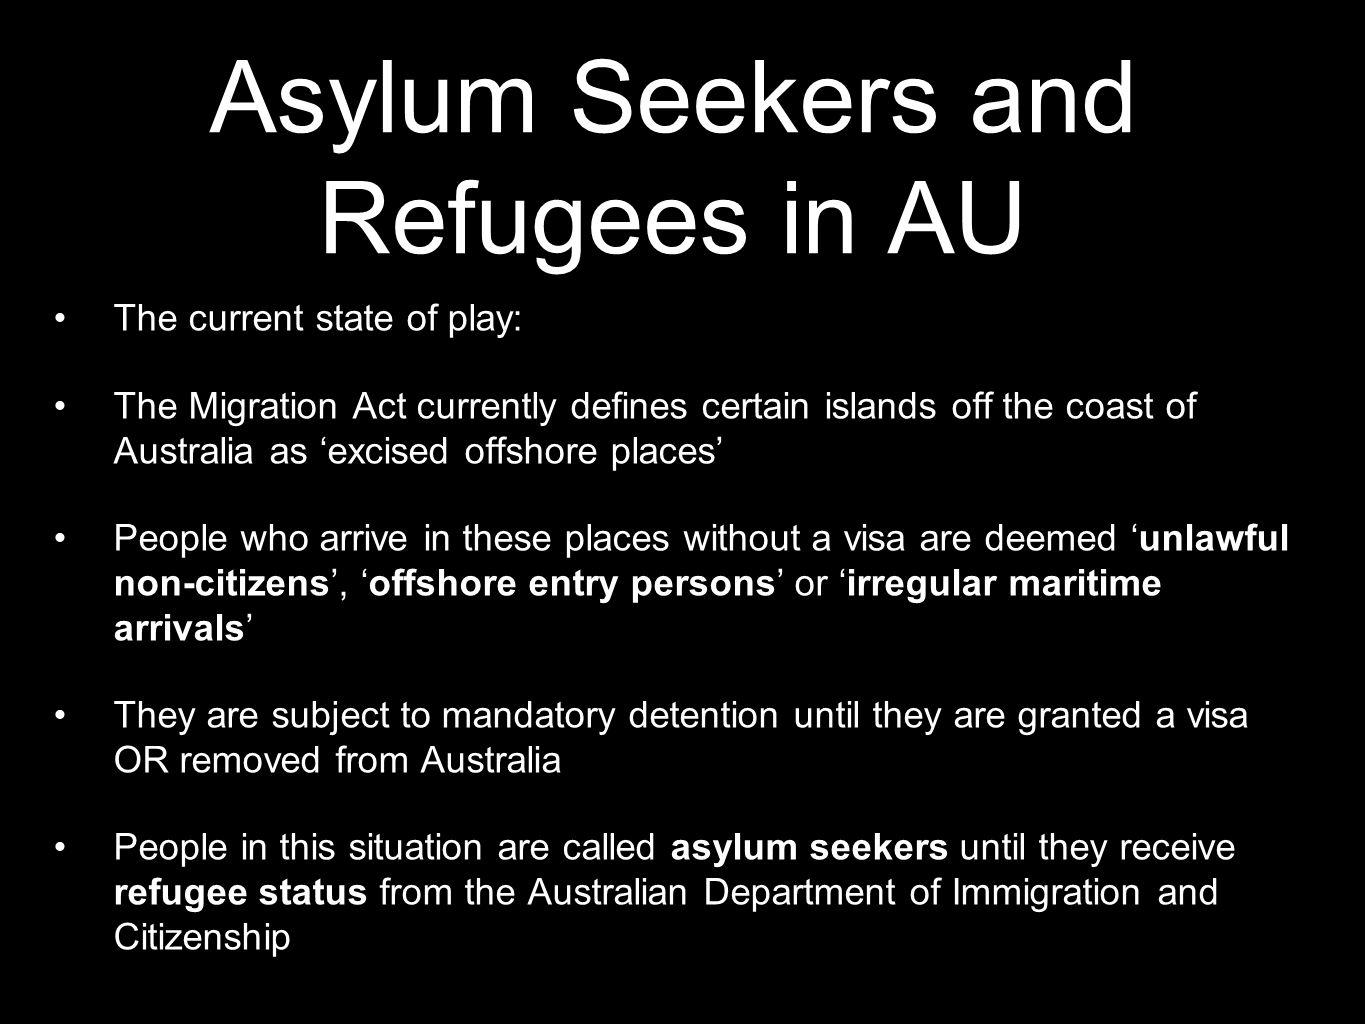 Asylum Seekers and Refugees in AU The current state of play: The Migration Act currently defines certain islands off the coast of Australia as 'excise